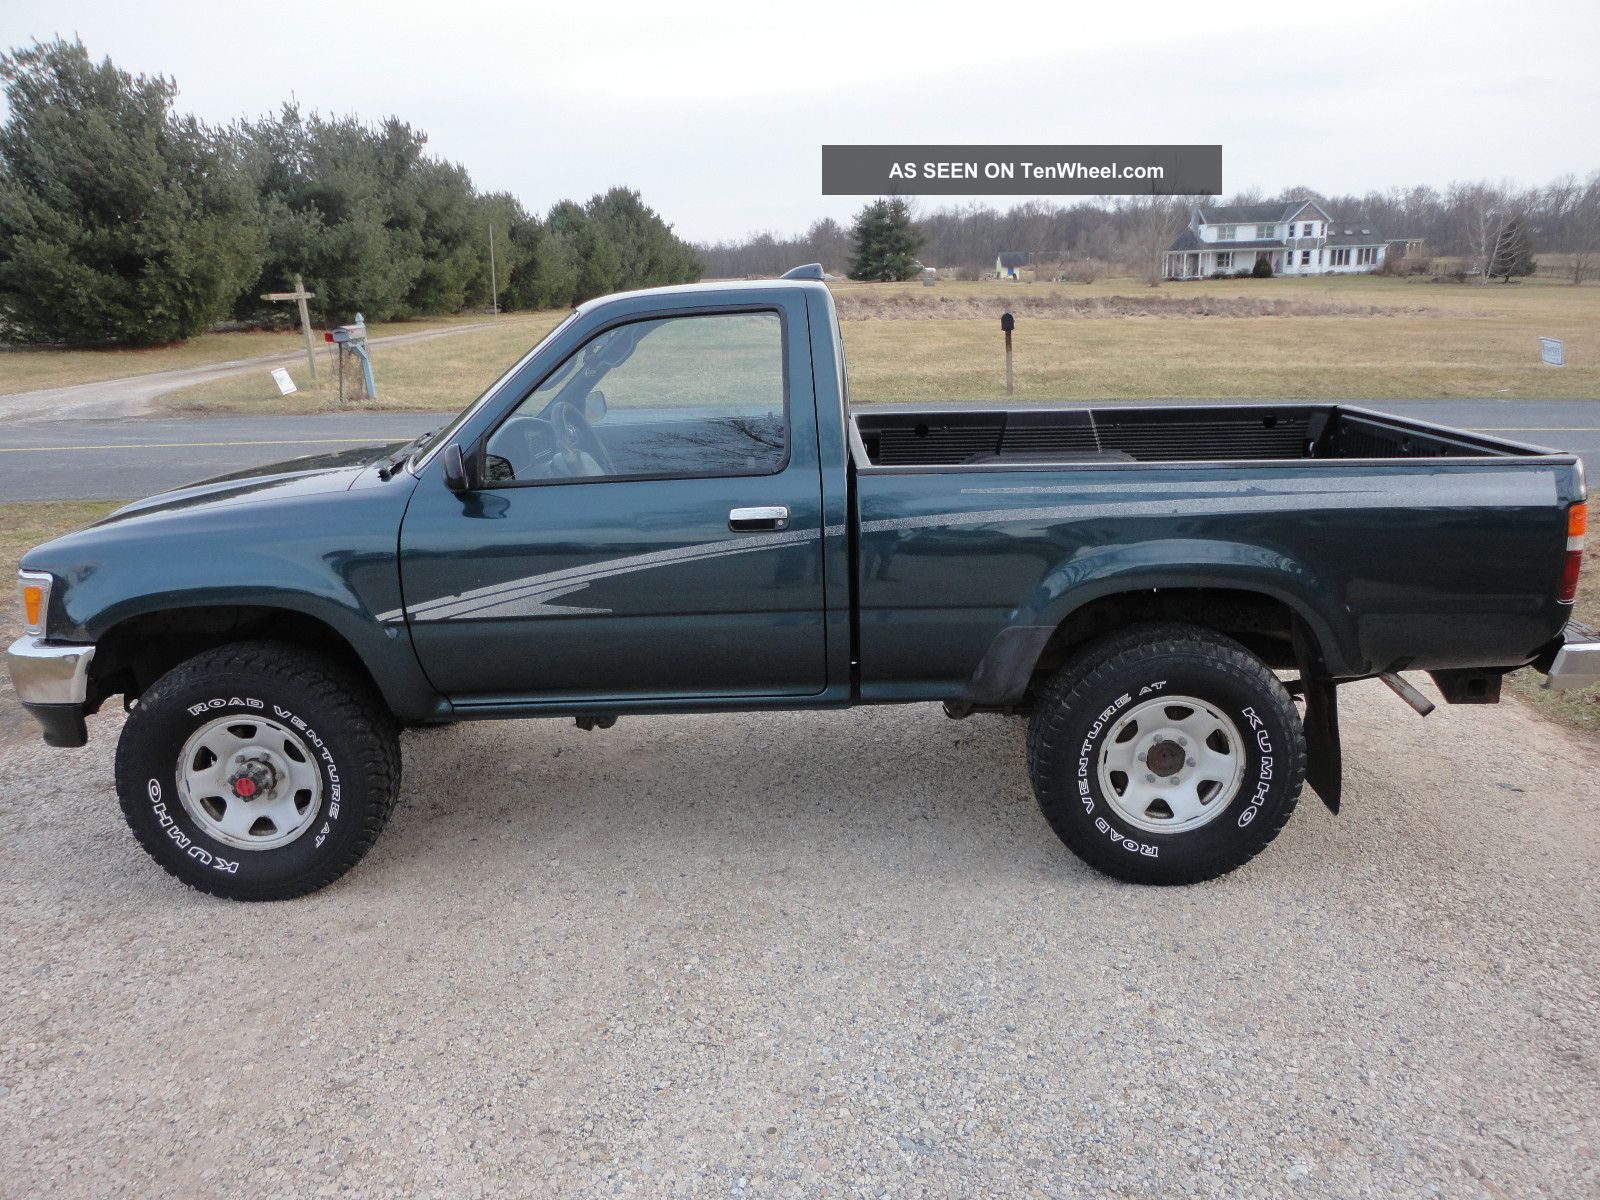 1995 toyota truck 4x4 4wd 4 cylinder 5 speed pre tacoma hilux truck. Black Bedroom Furniture Sets. Home Design Ideas